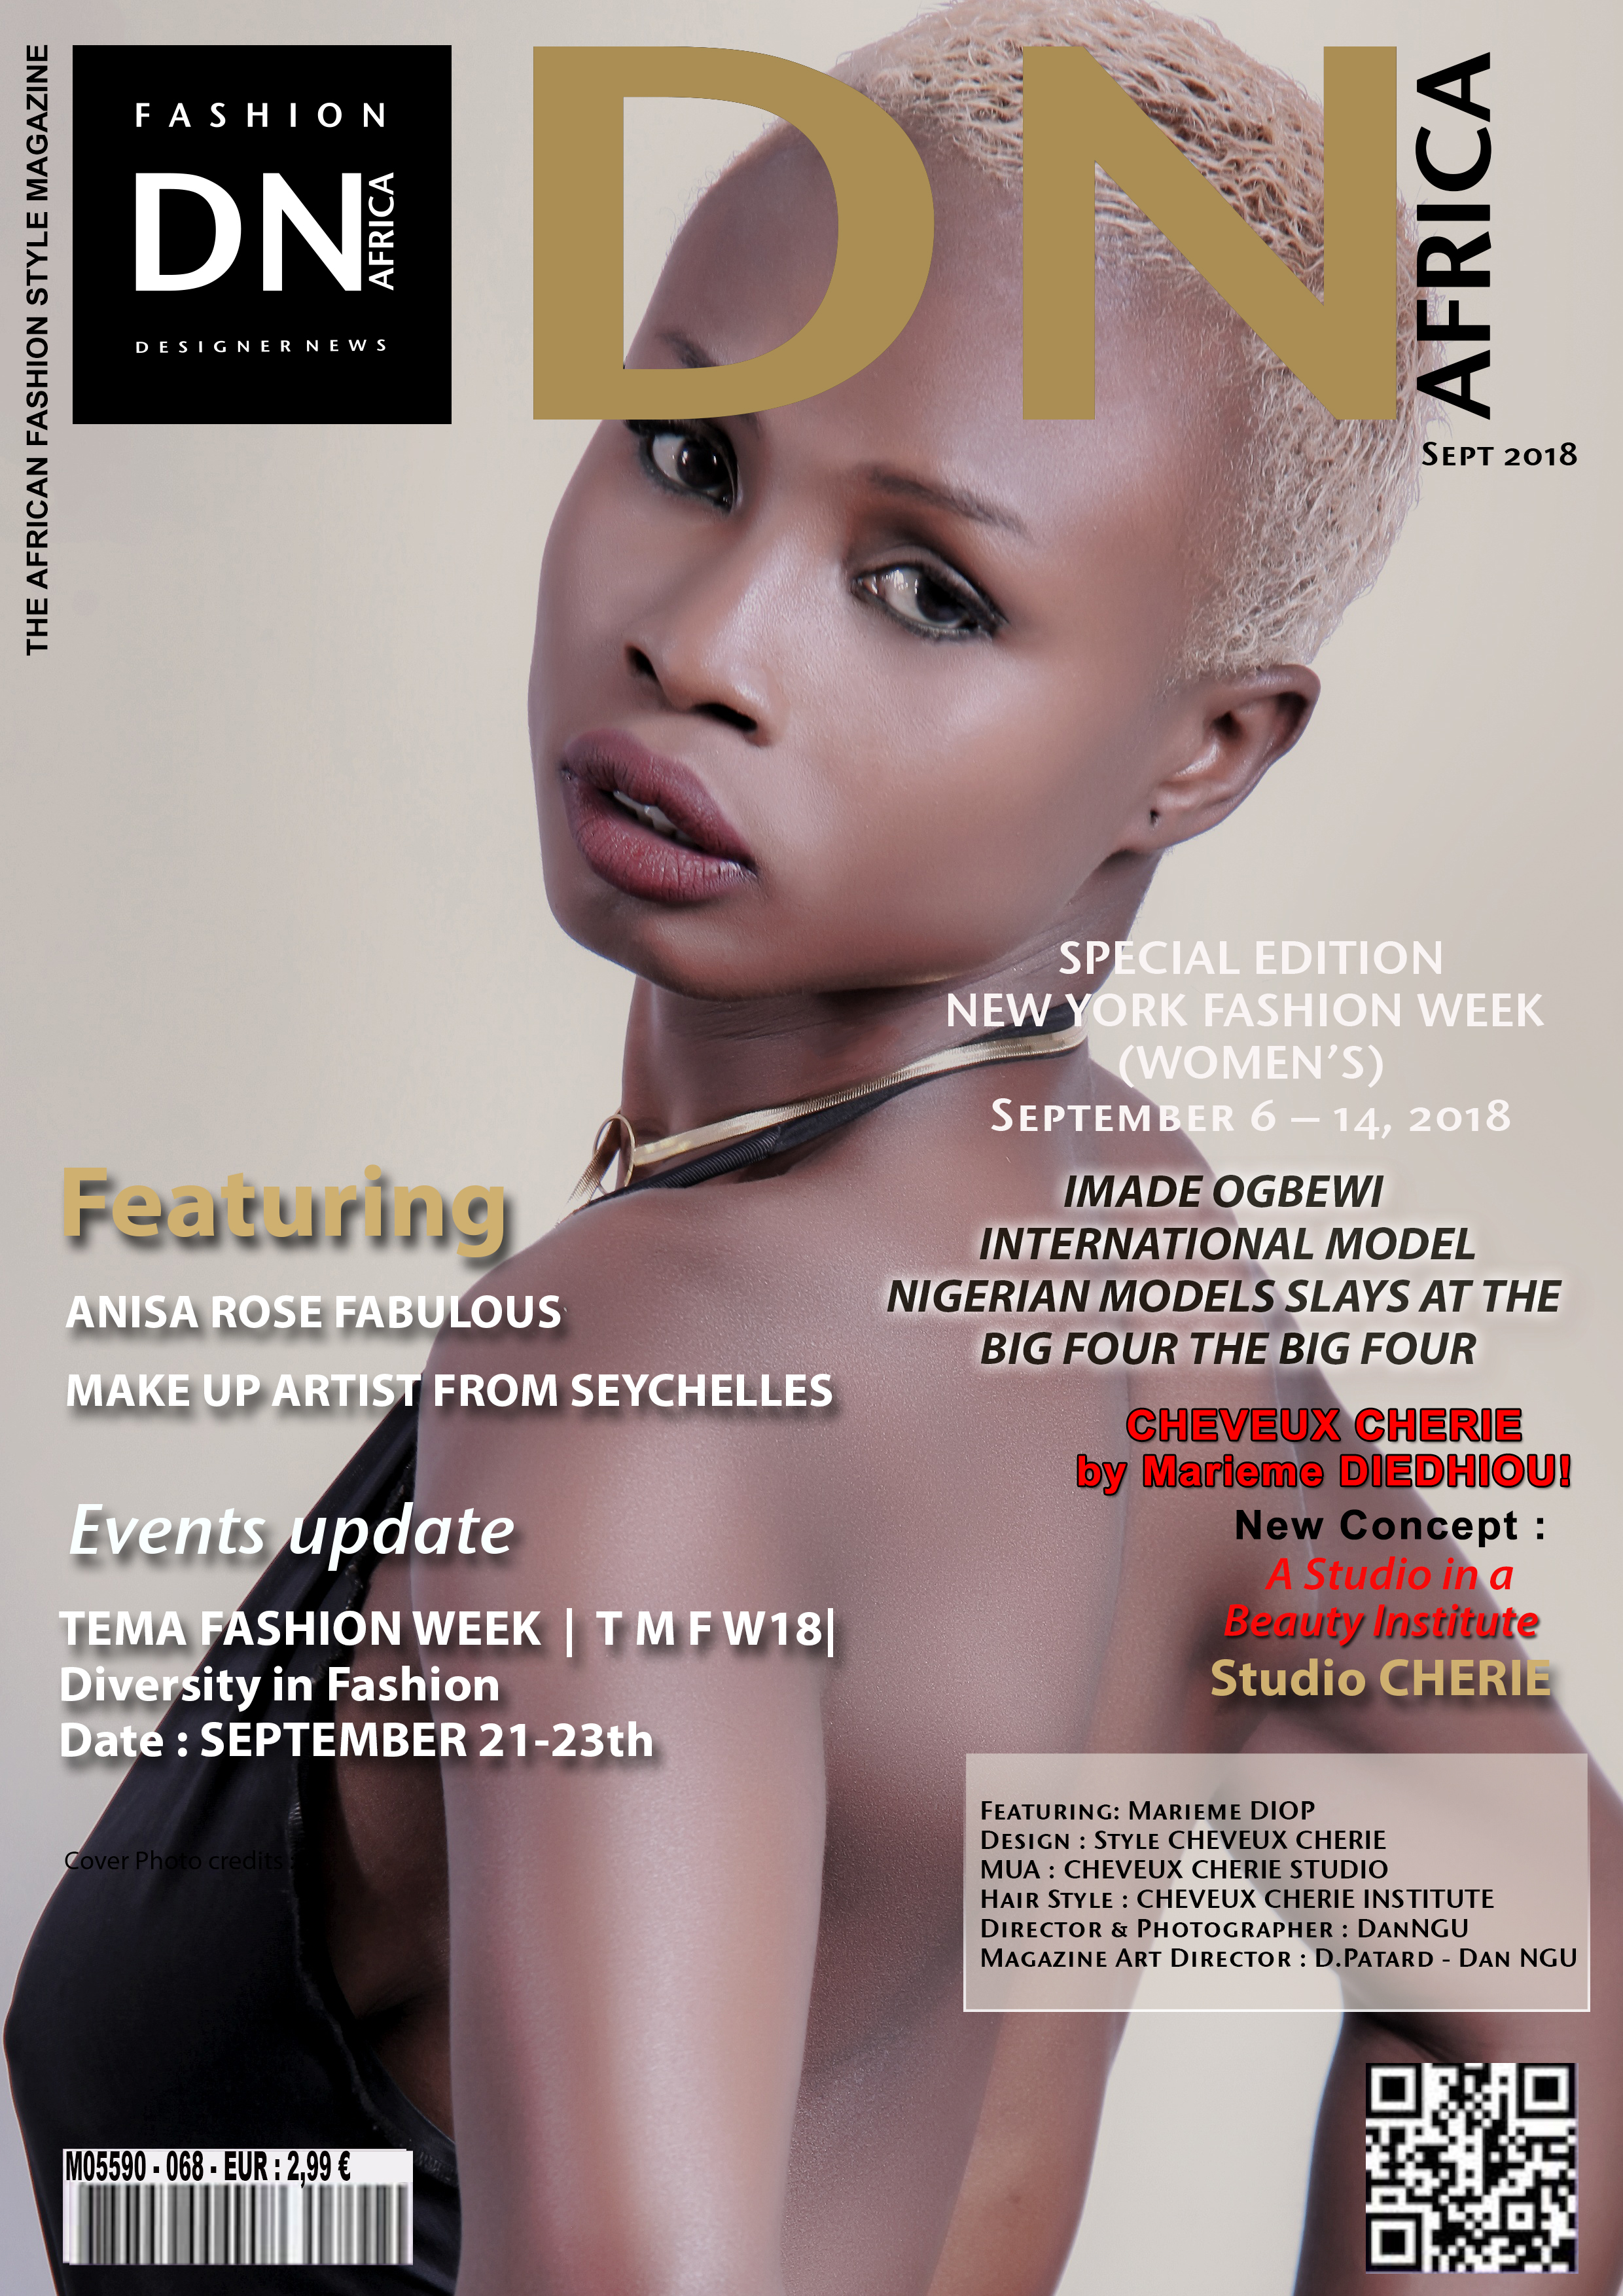 AFRICAN FASHION STYLE MAGAZINE – MARIEME DIOP HAIR STYLE DESIGNER FOR CHEVEUX CHERIE INSTITUTE - SEPTEMBER 2018 COVER - Media Partner DN MAG, DN AFRICA -STUDIO 24 NIGERIA - STUDIO 24 INTERNATIONAL - CHEBVEUX CHERIE STUDIO